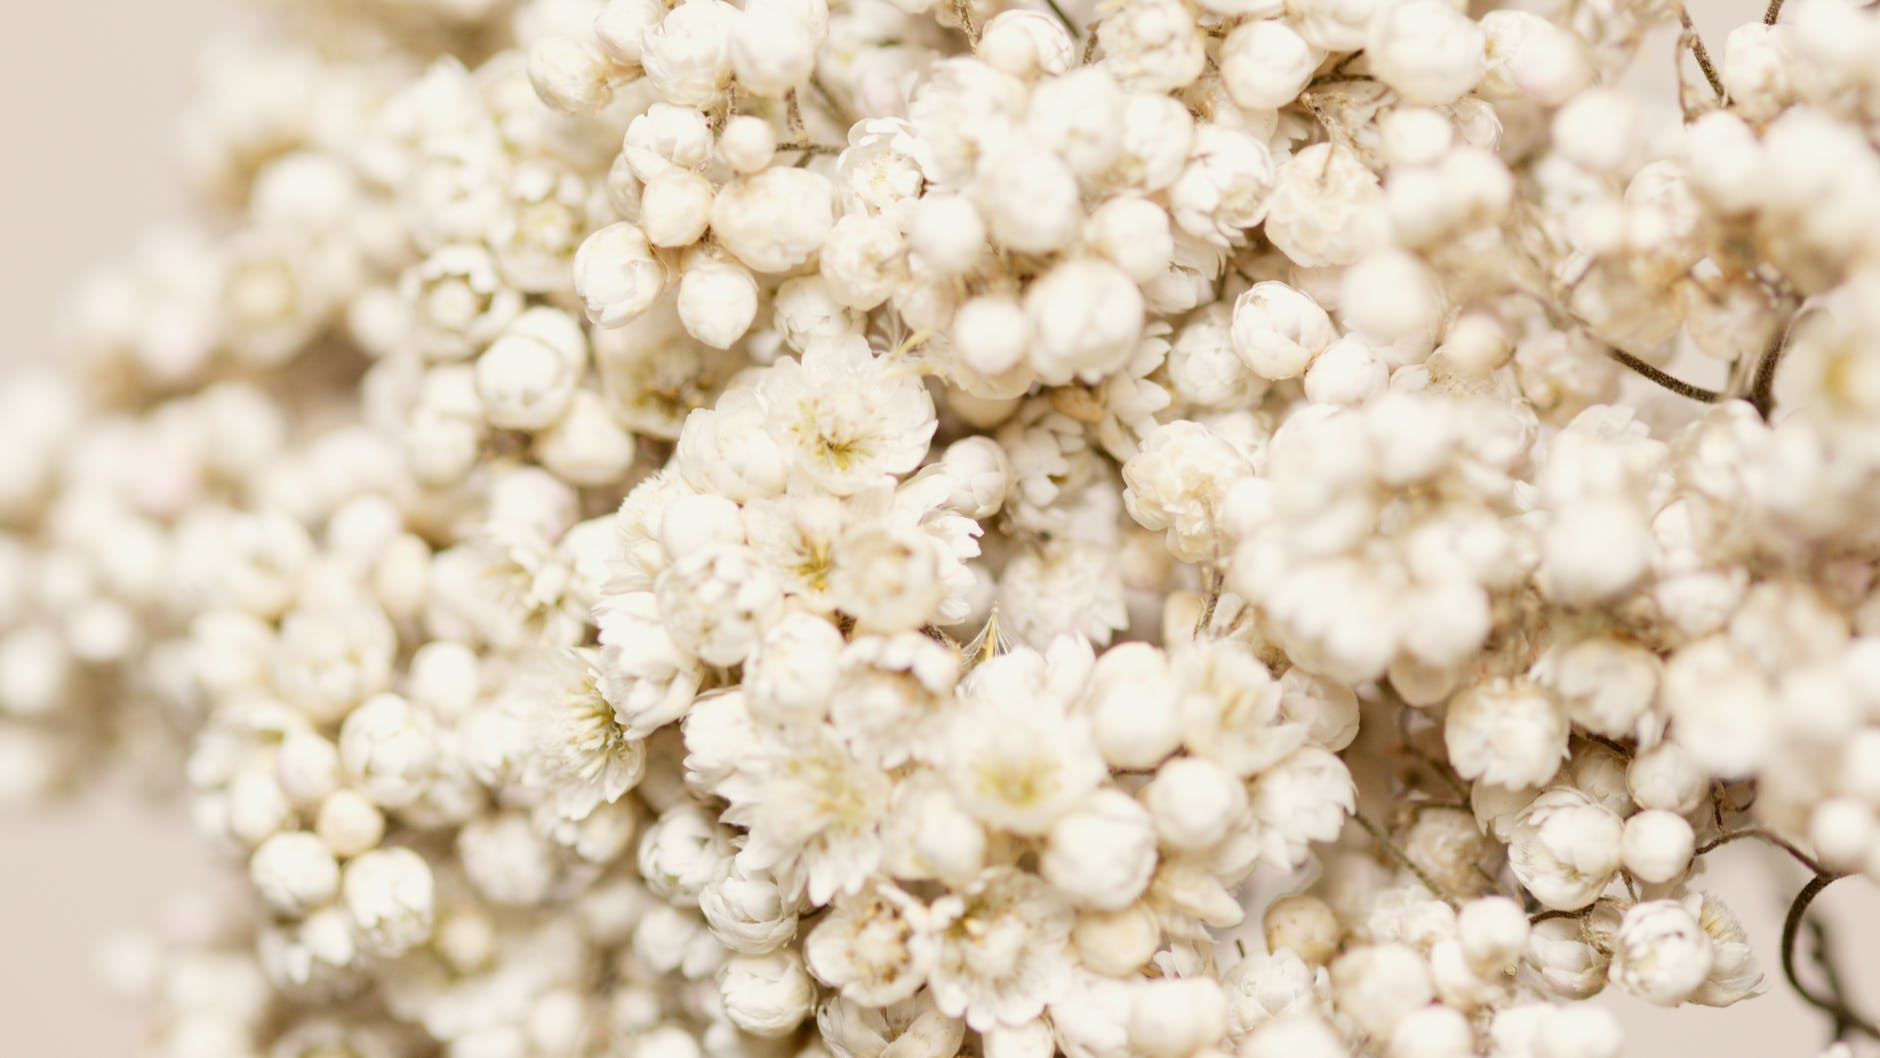 white masses of flowers and buds